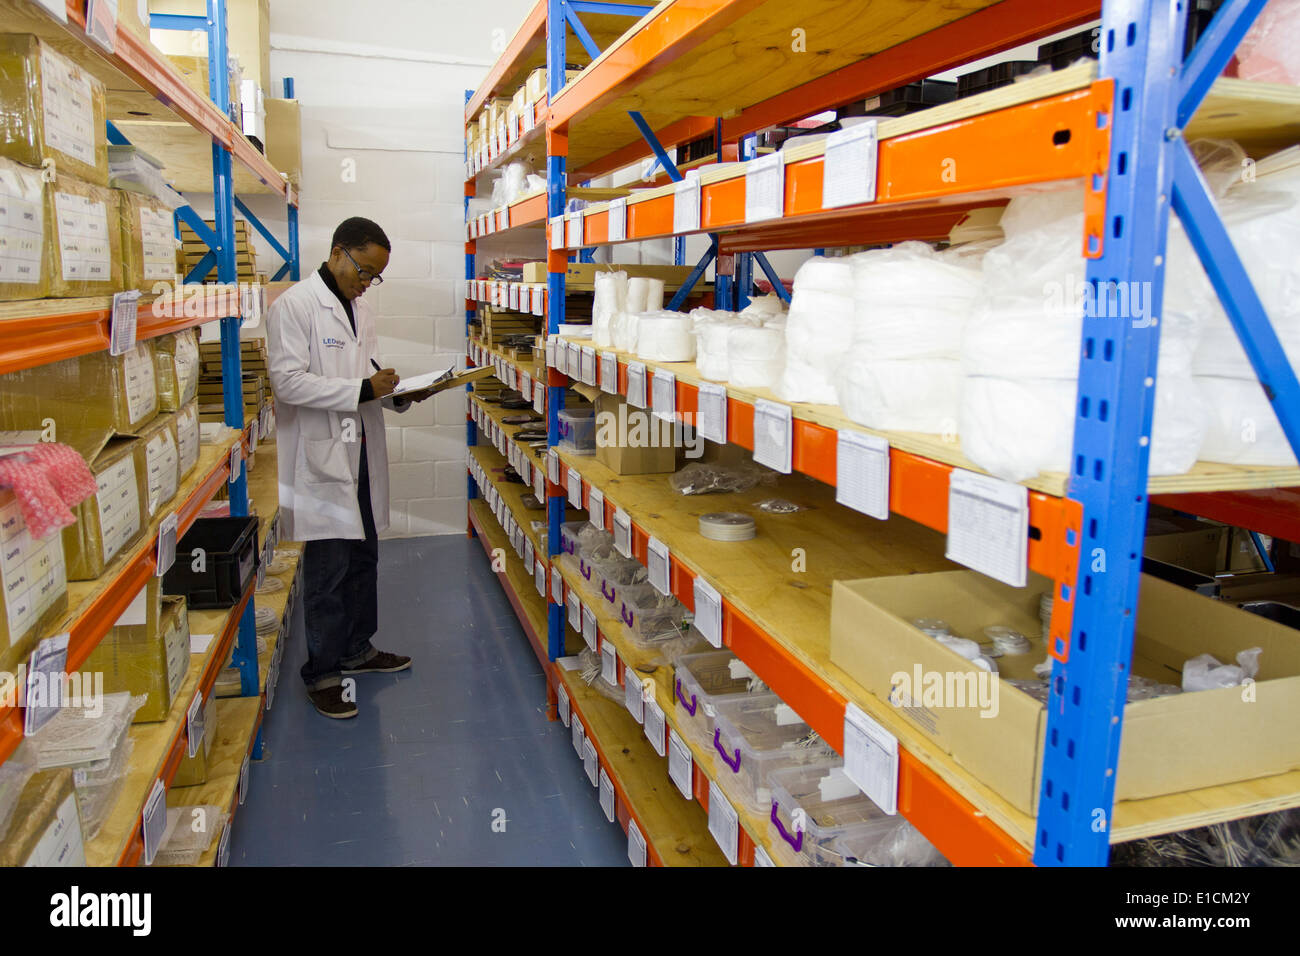 A South African employee taking stock of inventory among rows of shelves in a warehouse. - Stock Image